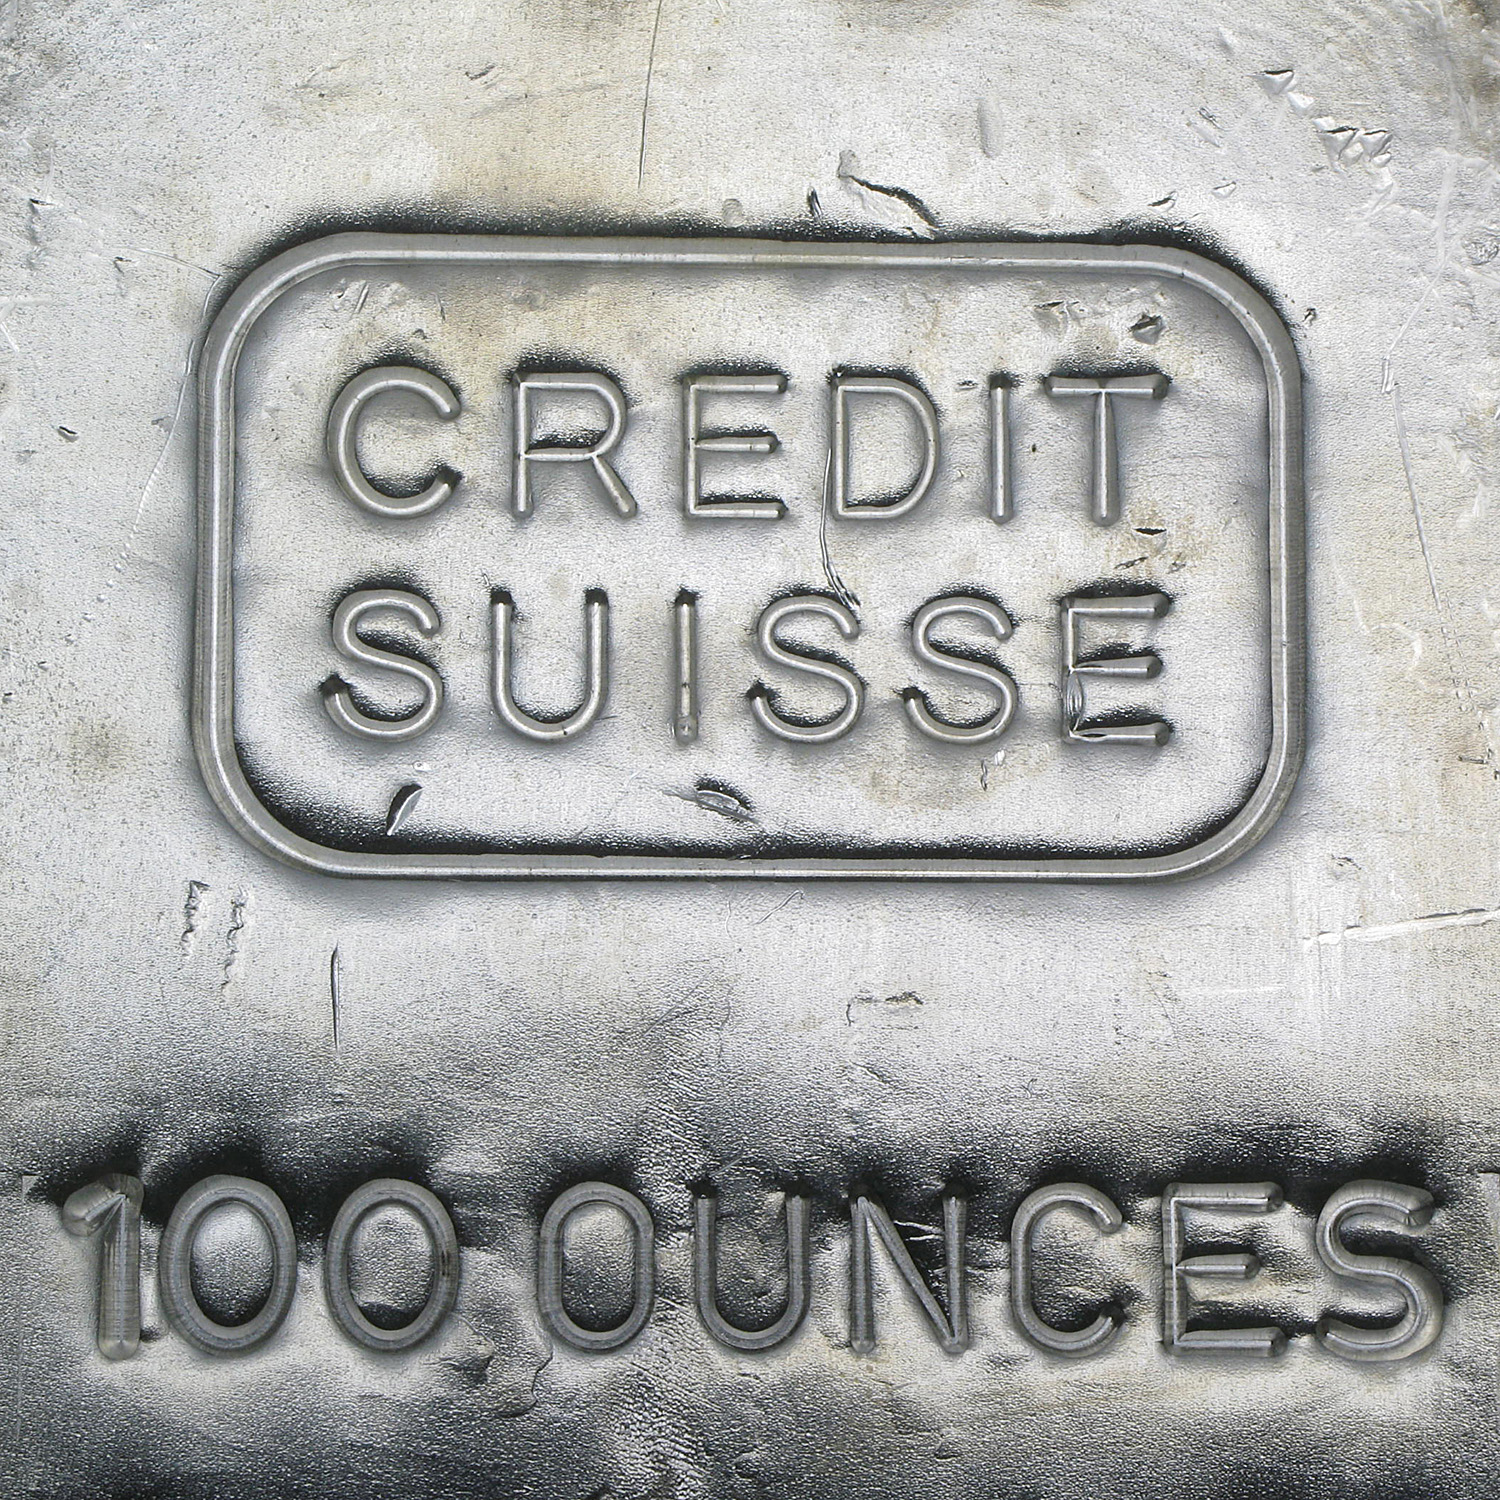 100 oz Silver Bars - Credit Suisse